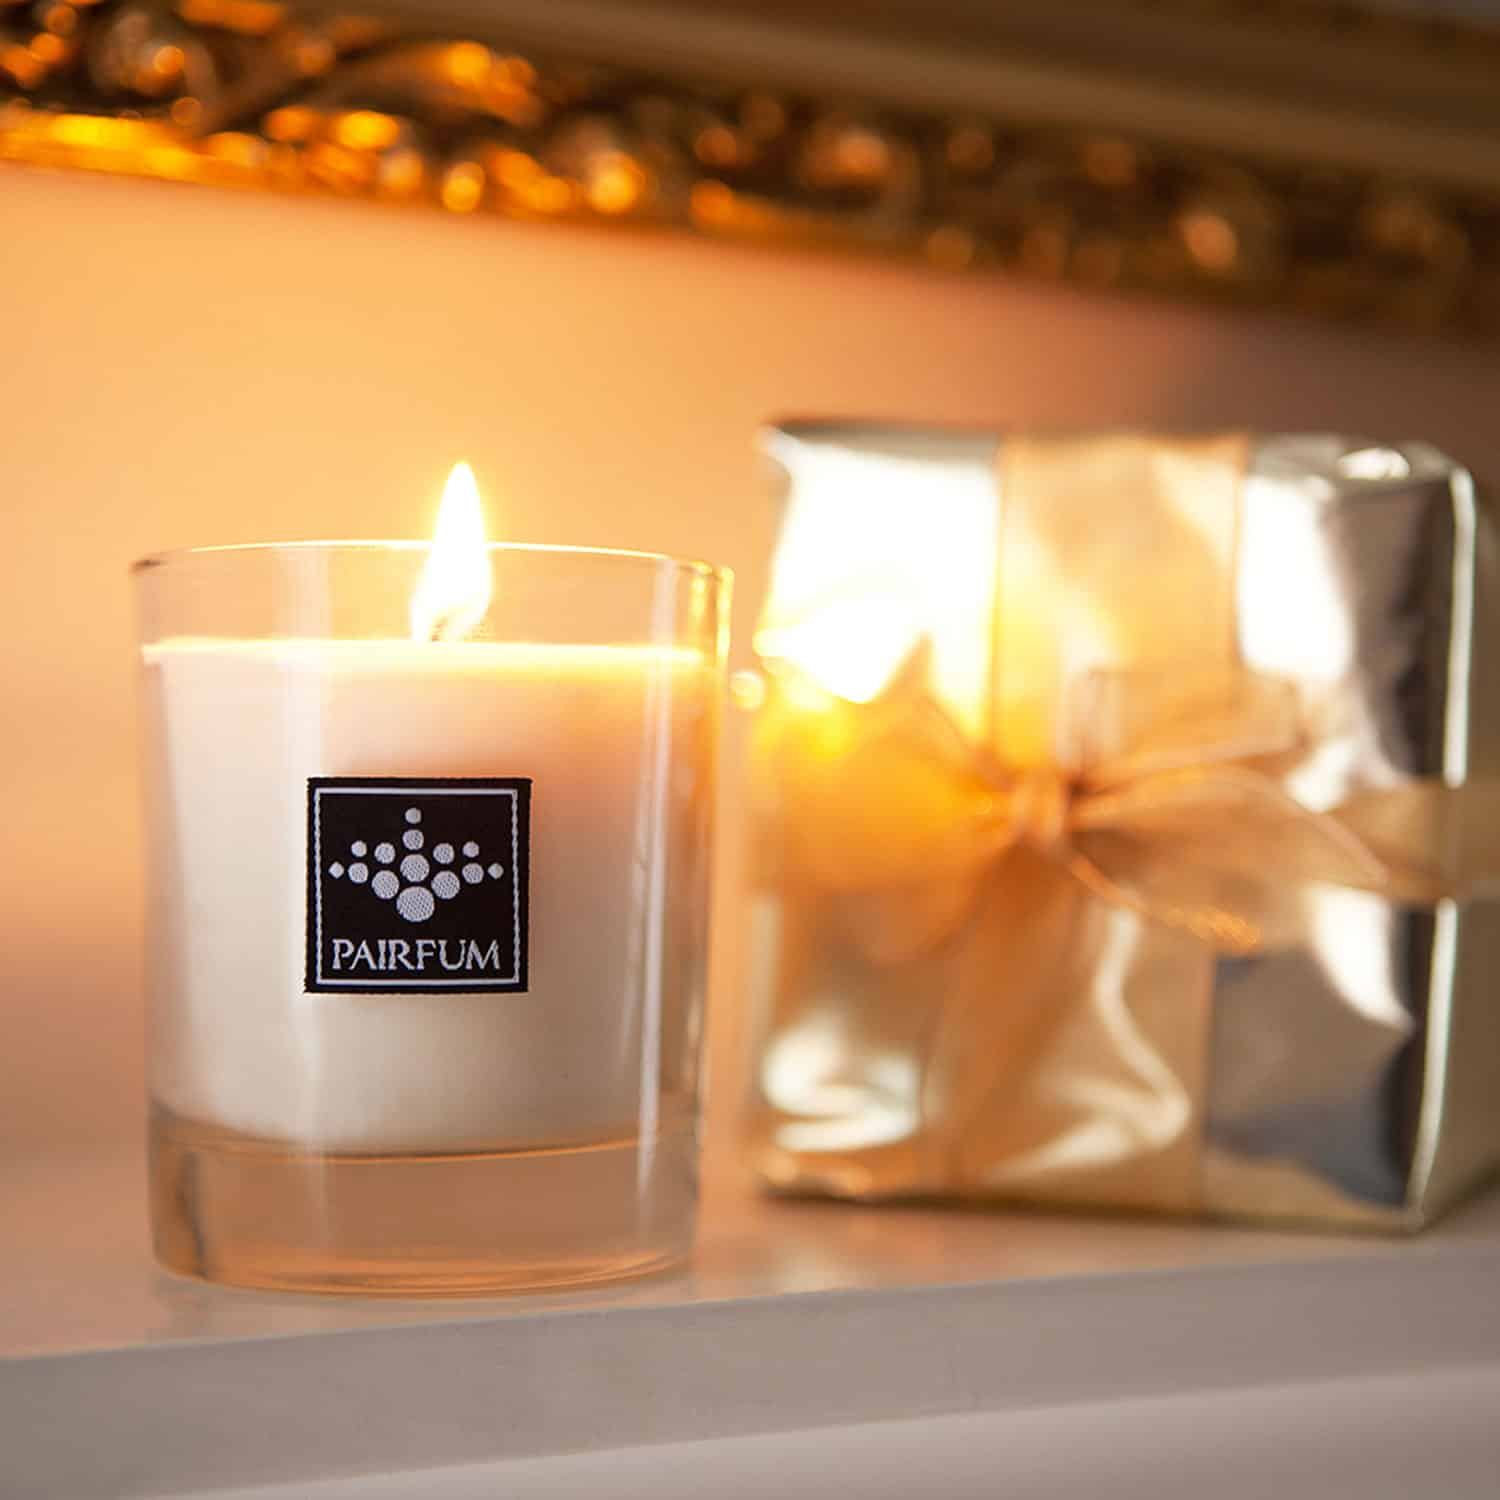 Pairfum Lifestyle Flower Sow Wax Fragranced Candle